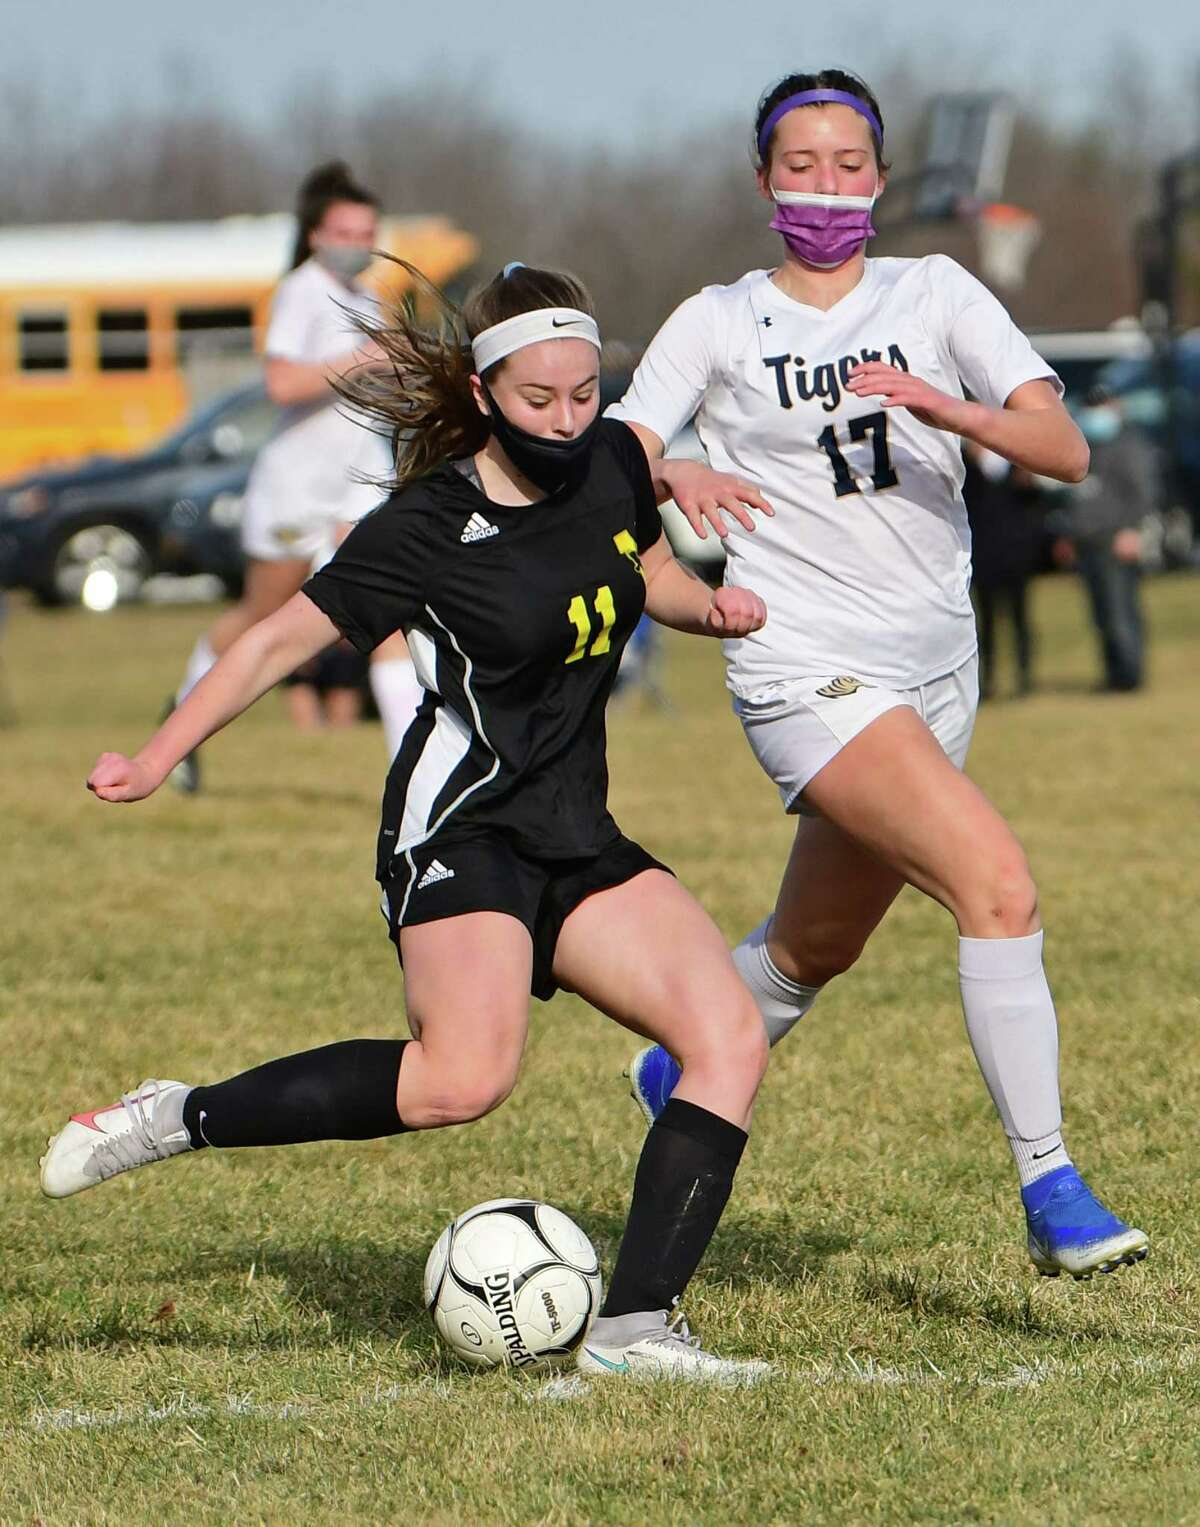 Voorheesville's Emma Farrell is defended by Cohoes' Carissa Shanahan during a soccer game on March 23, 2021. She is looking forward to her senior season with the Blackbirds.